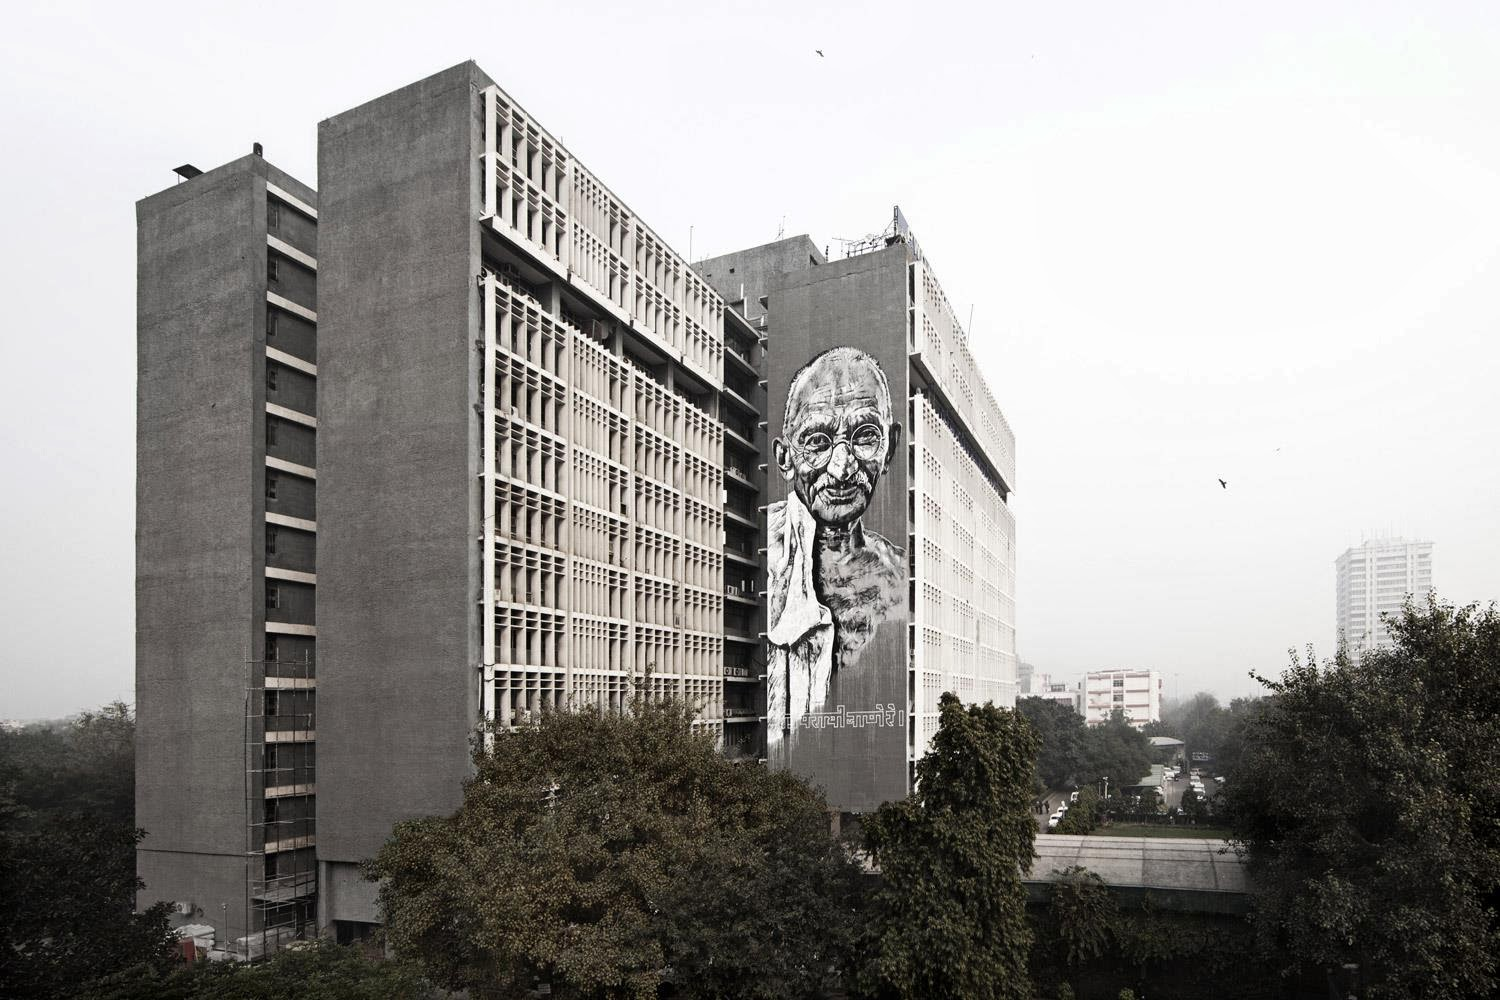 hendrik-ecb-beikirch-gandhi-mural-in-new-delhi-india-01